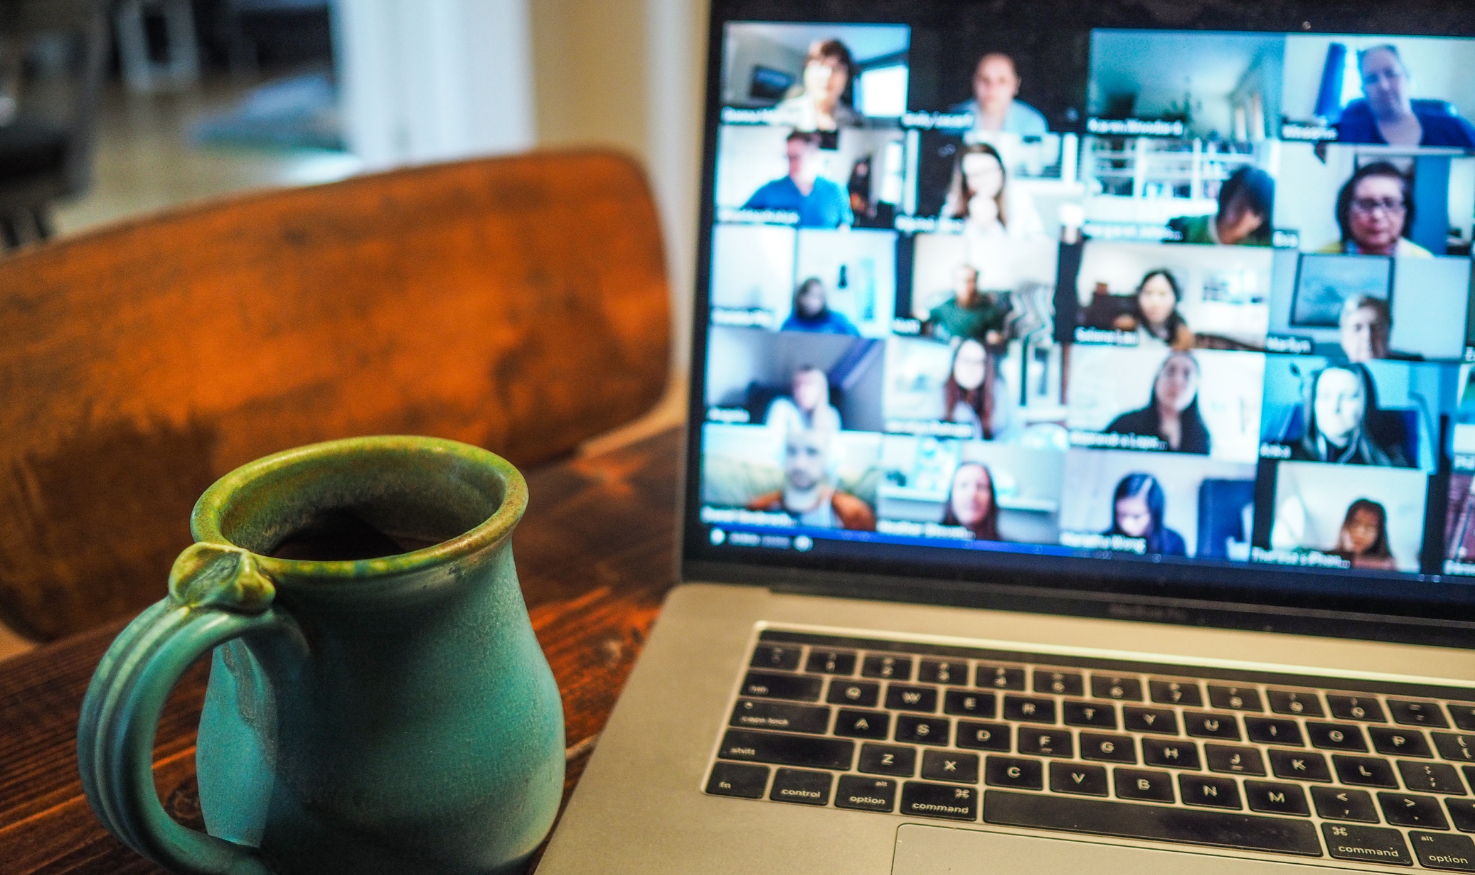 An office meeting through a video conferencing app